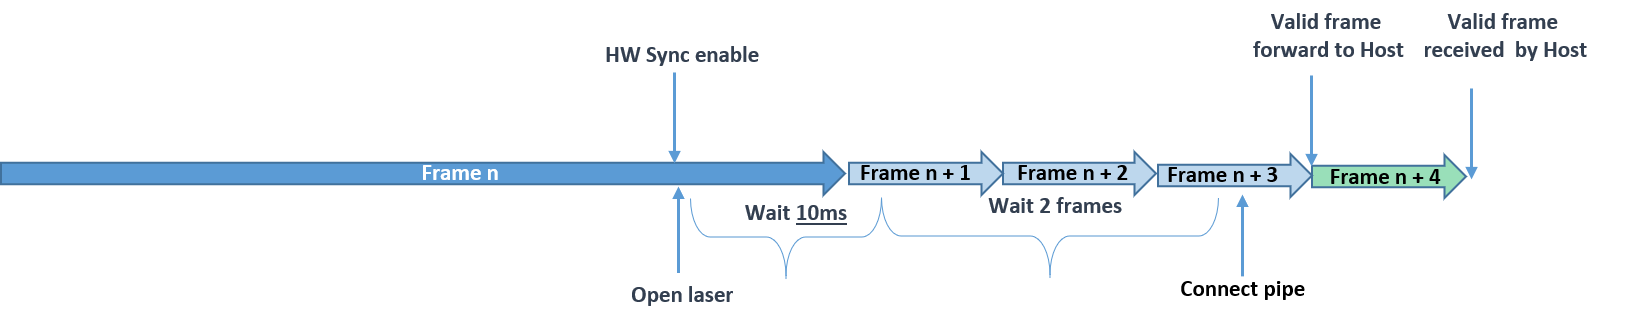 Figure 11. Enable received at the last ~6ms of the frame.